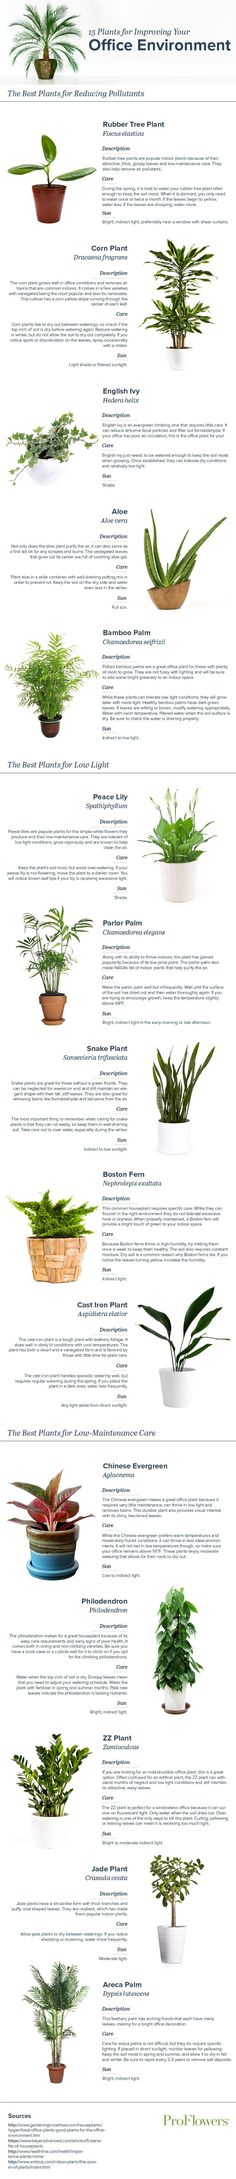 Does your office ever feel stuffy or artificial? Add some green to your workspace! Check out our list of the 15 best office plants.